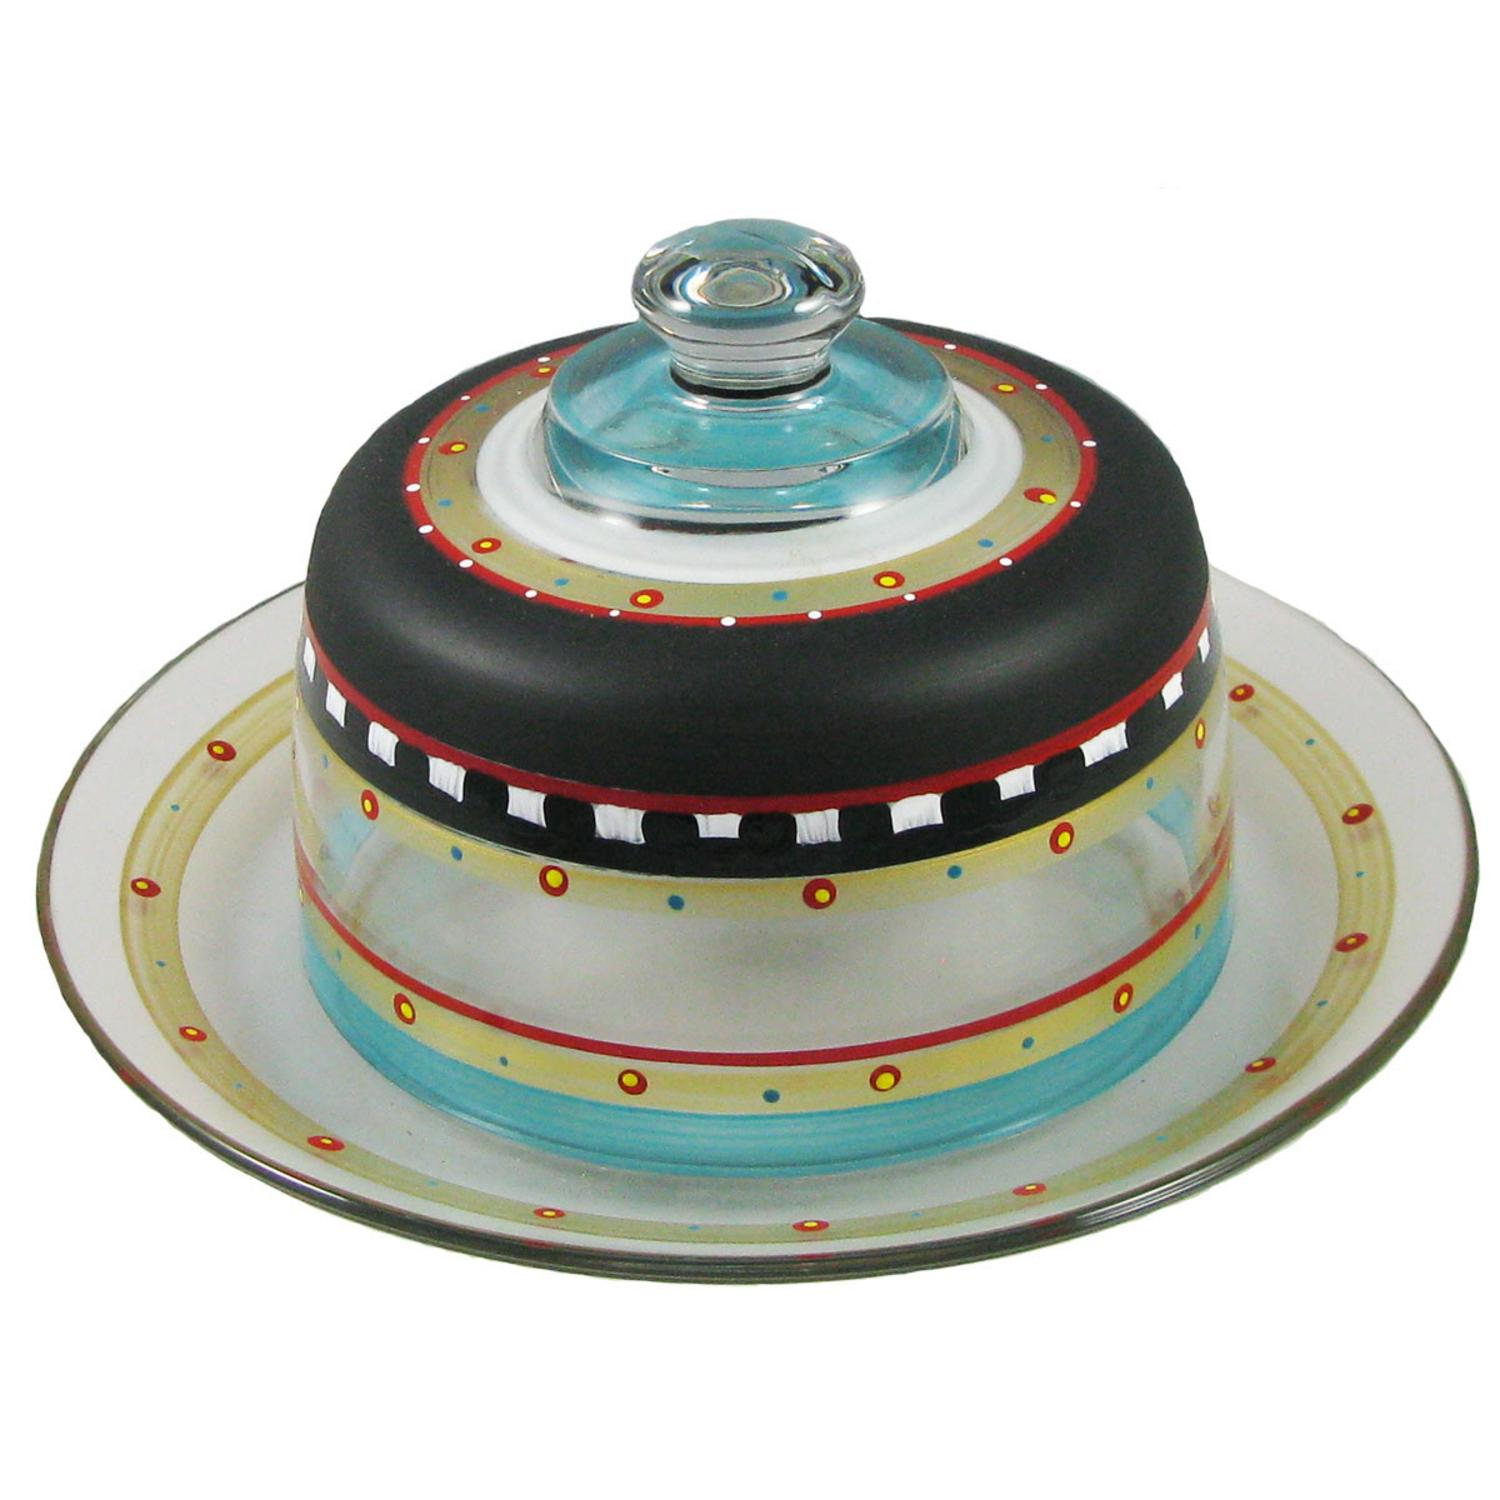 Mosaic Chalkboard and Stripes Hand Painted Glass Large Convertible Cake Dome 11""